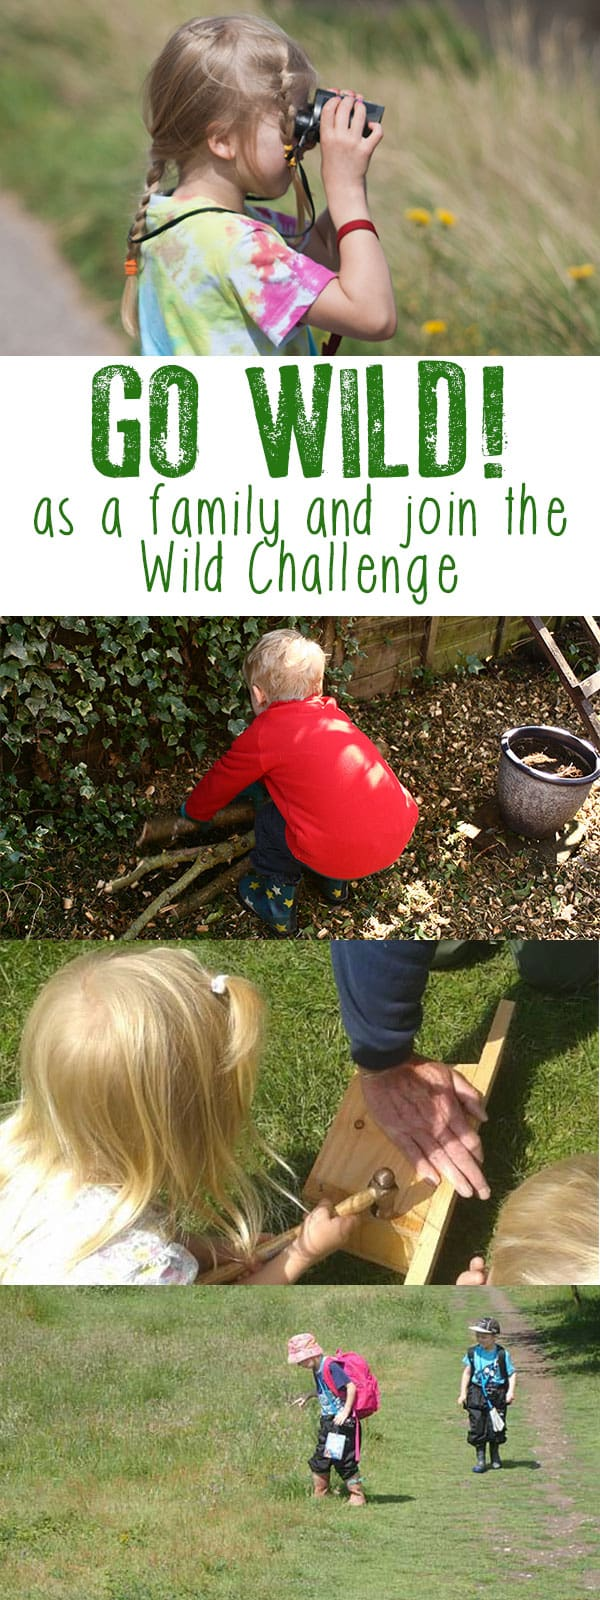 Experience and learn about nature with Wild Challenges from the RSPB as you and your family work together to complete the challenges set!